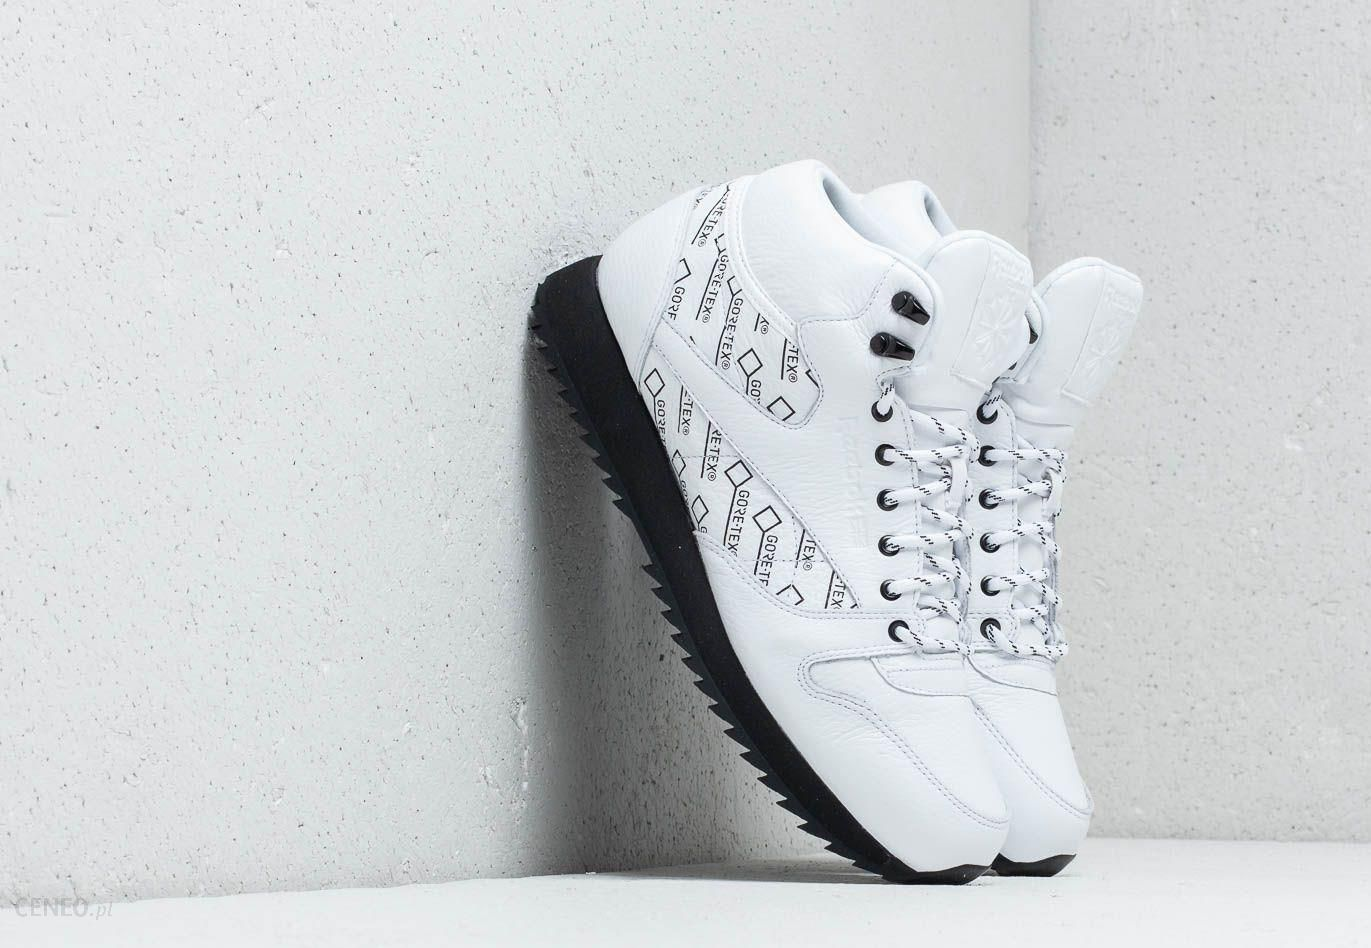 4b2e8713e21 Reebok CL Leather Mid Ripple Gore-Tex White  Black - zdjęcie 1